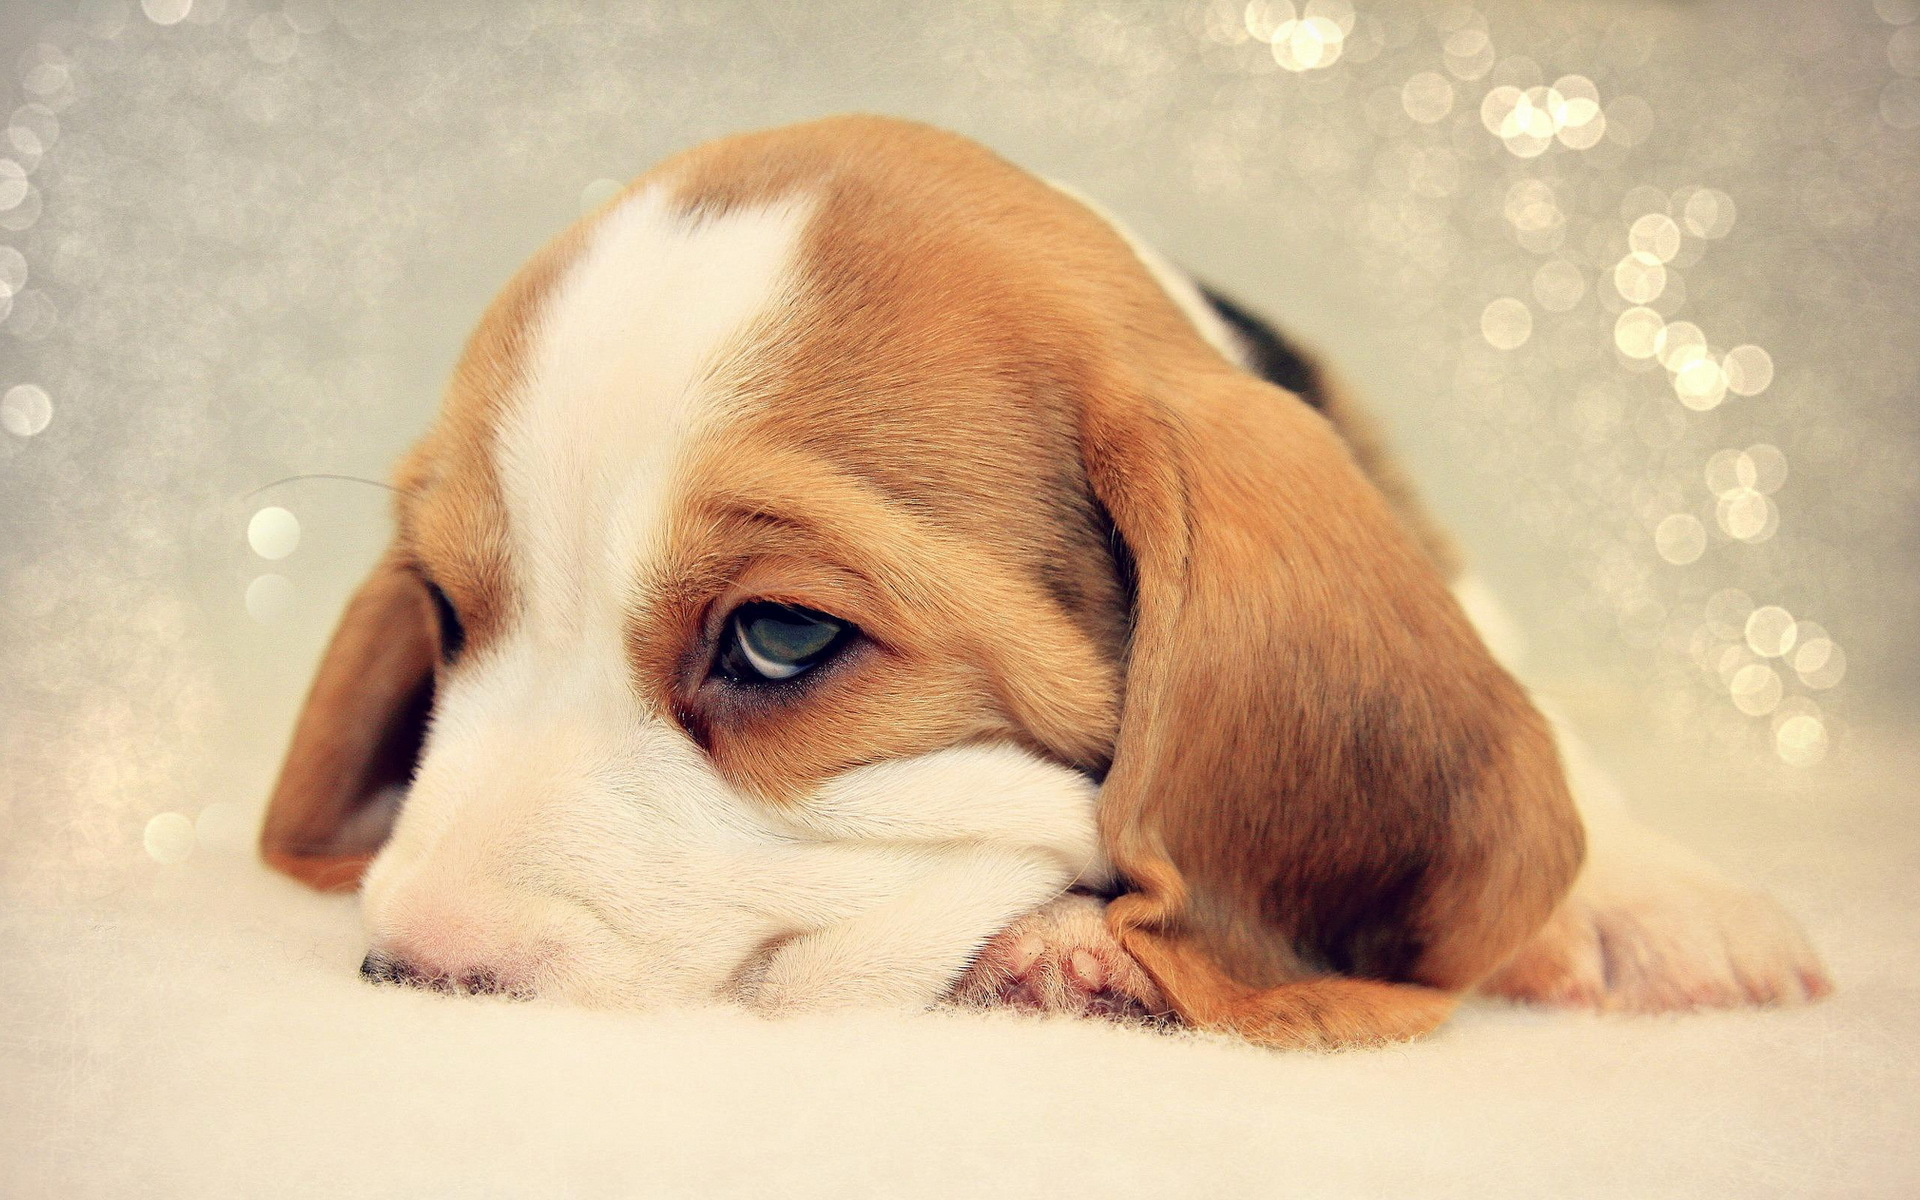 Wallpaper Perritos 3d Sad Beagle Puppy Nuzzled In Bed Wallpapers And Images